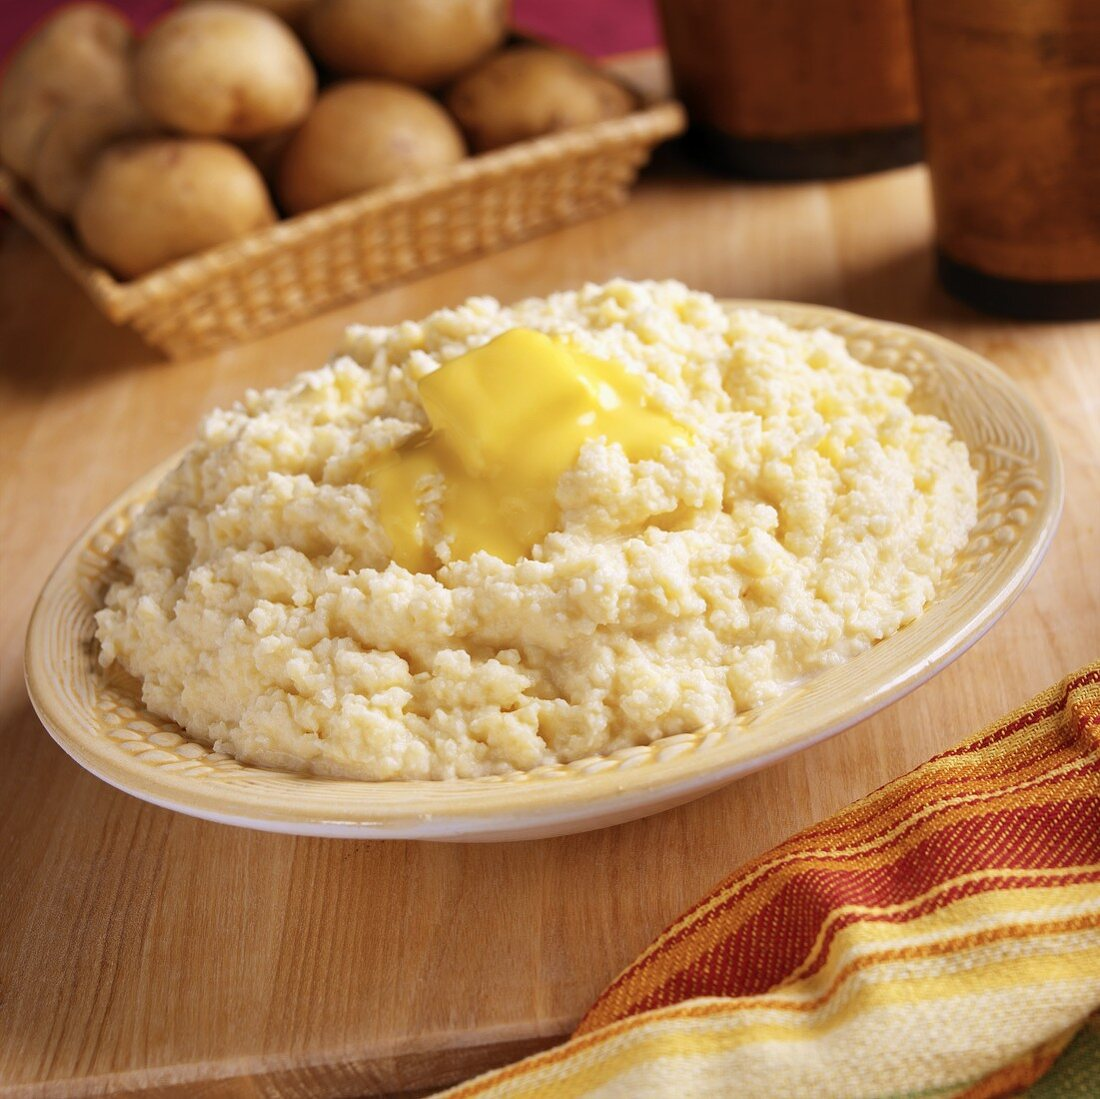 Mashed Yukon Gold potatoes with piece of melting butter